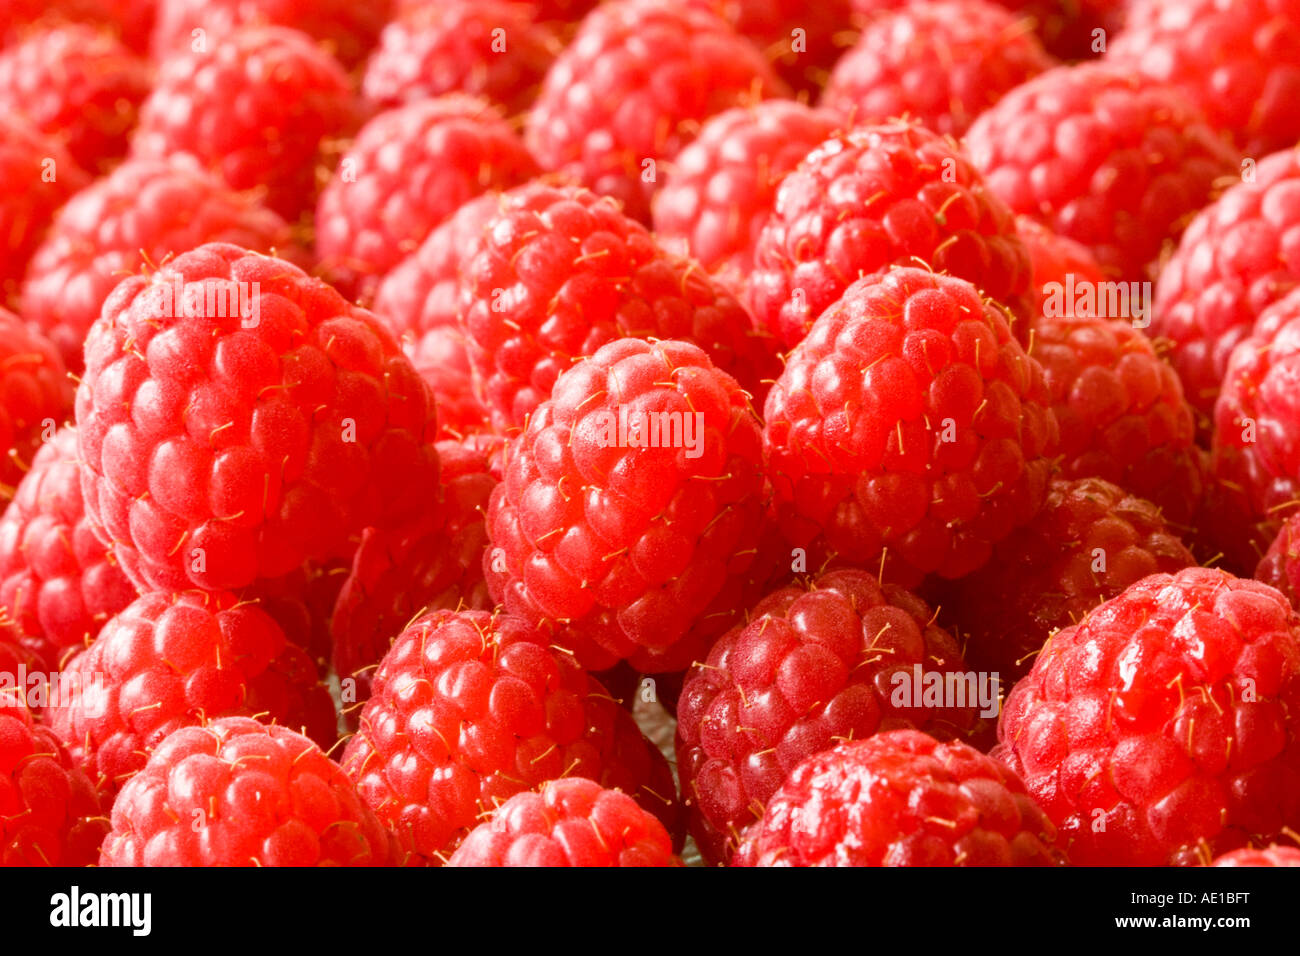 Raspeberries exposés à la vente Photo Stock